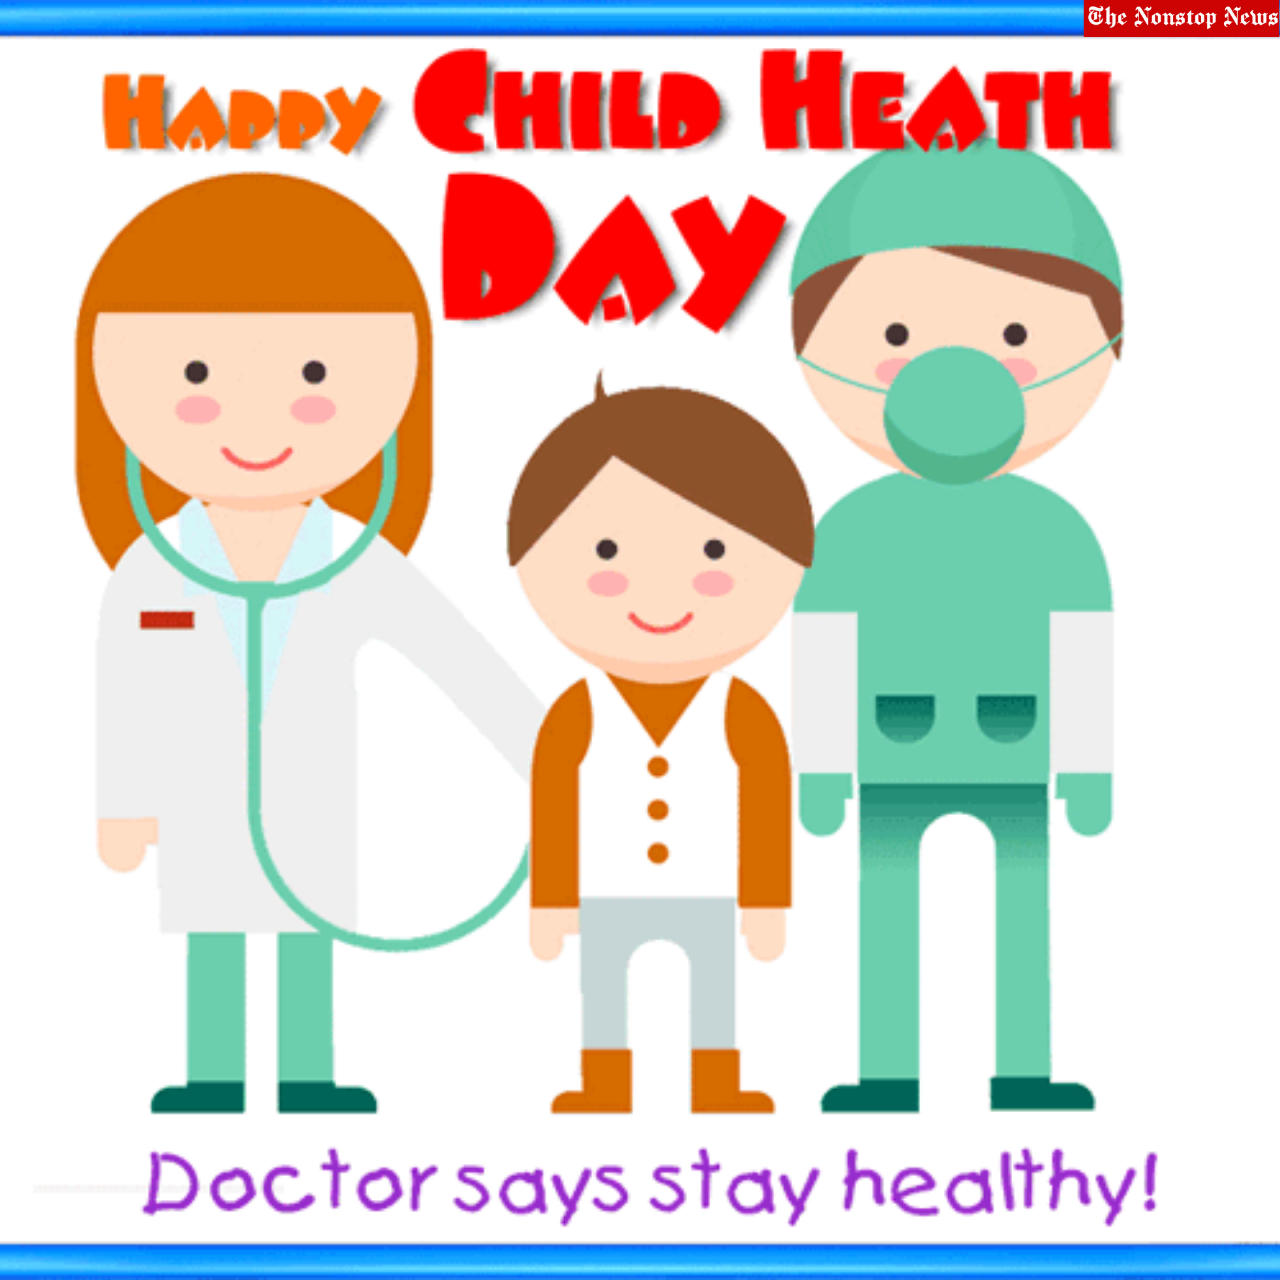 Child Health Day (US) 2021 Quotes, Images, Messages, and Social Media Posts to create awareness